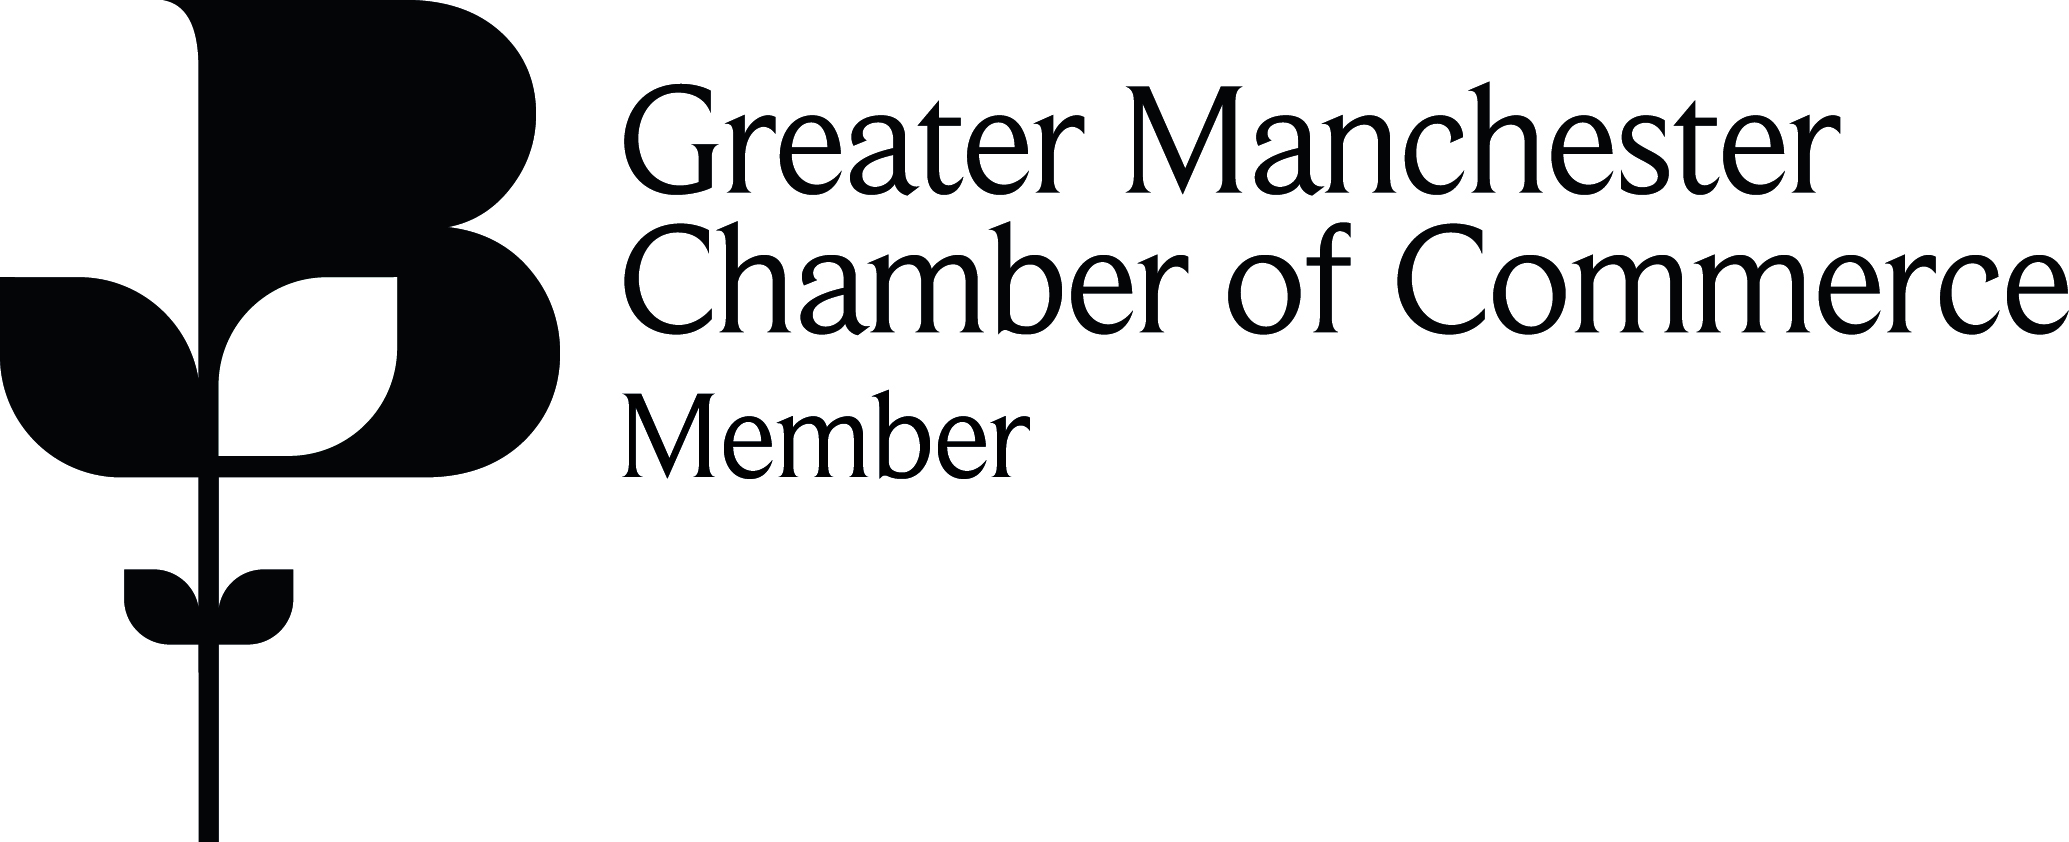 greater manchester chamber commerce